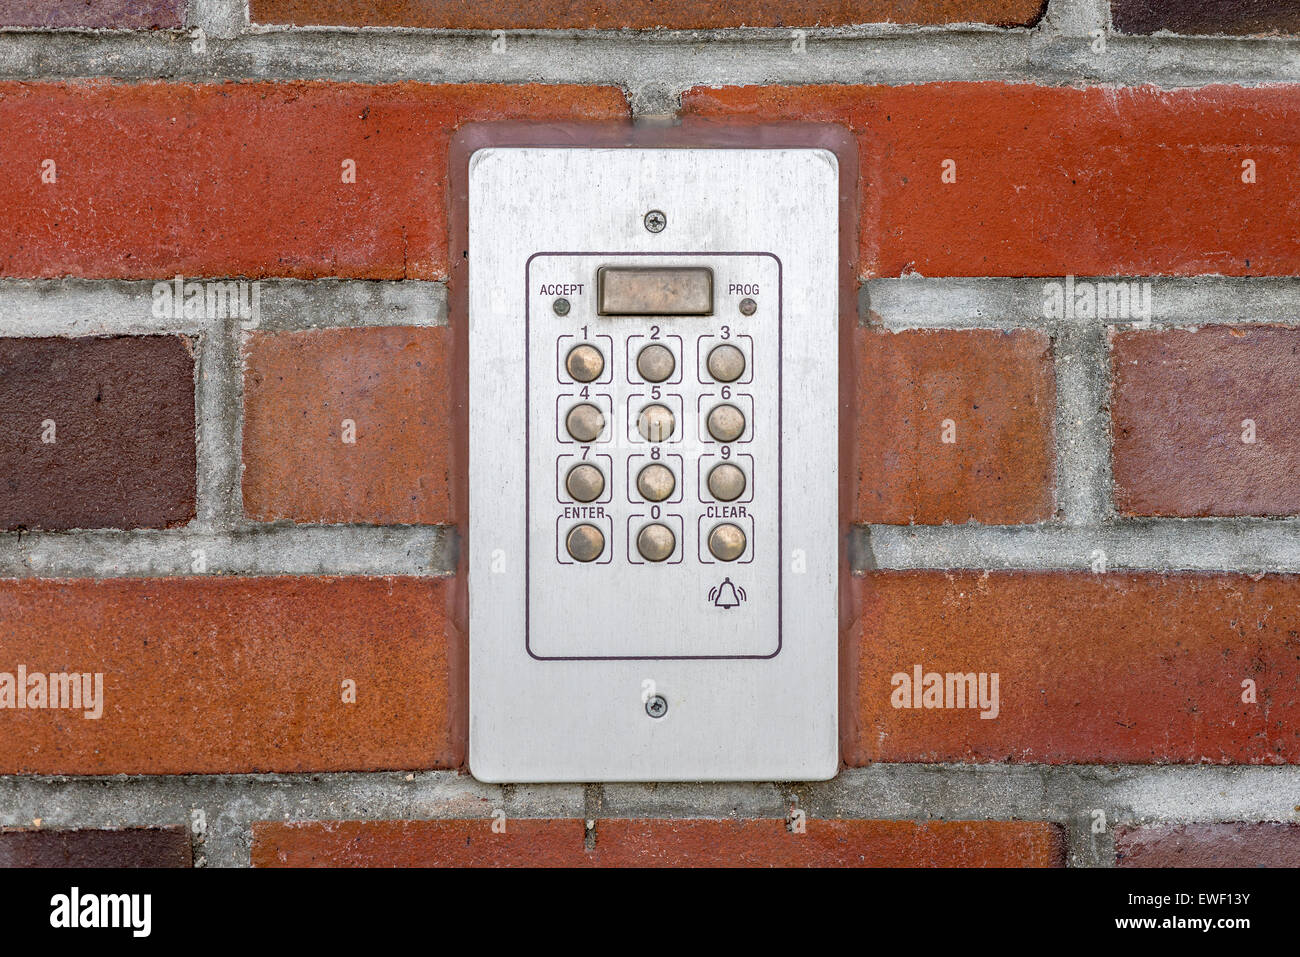 Door Entry System Stock Photos Amp Door Entry System Stock